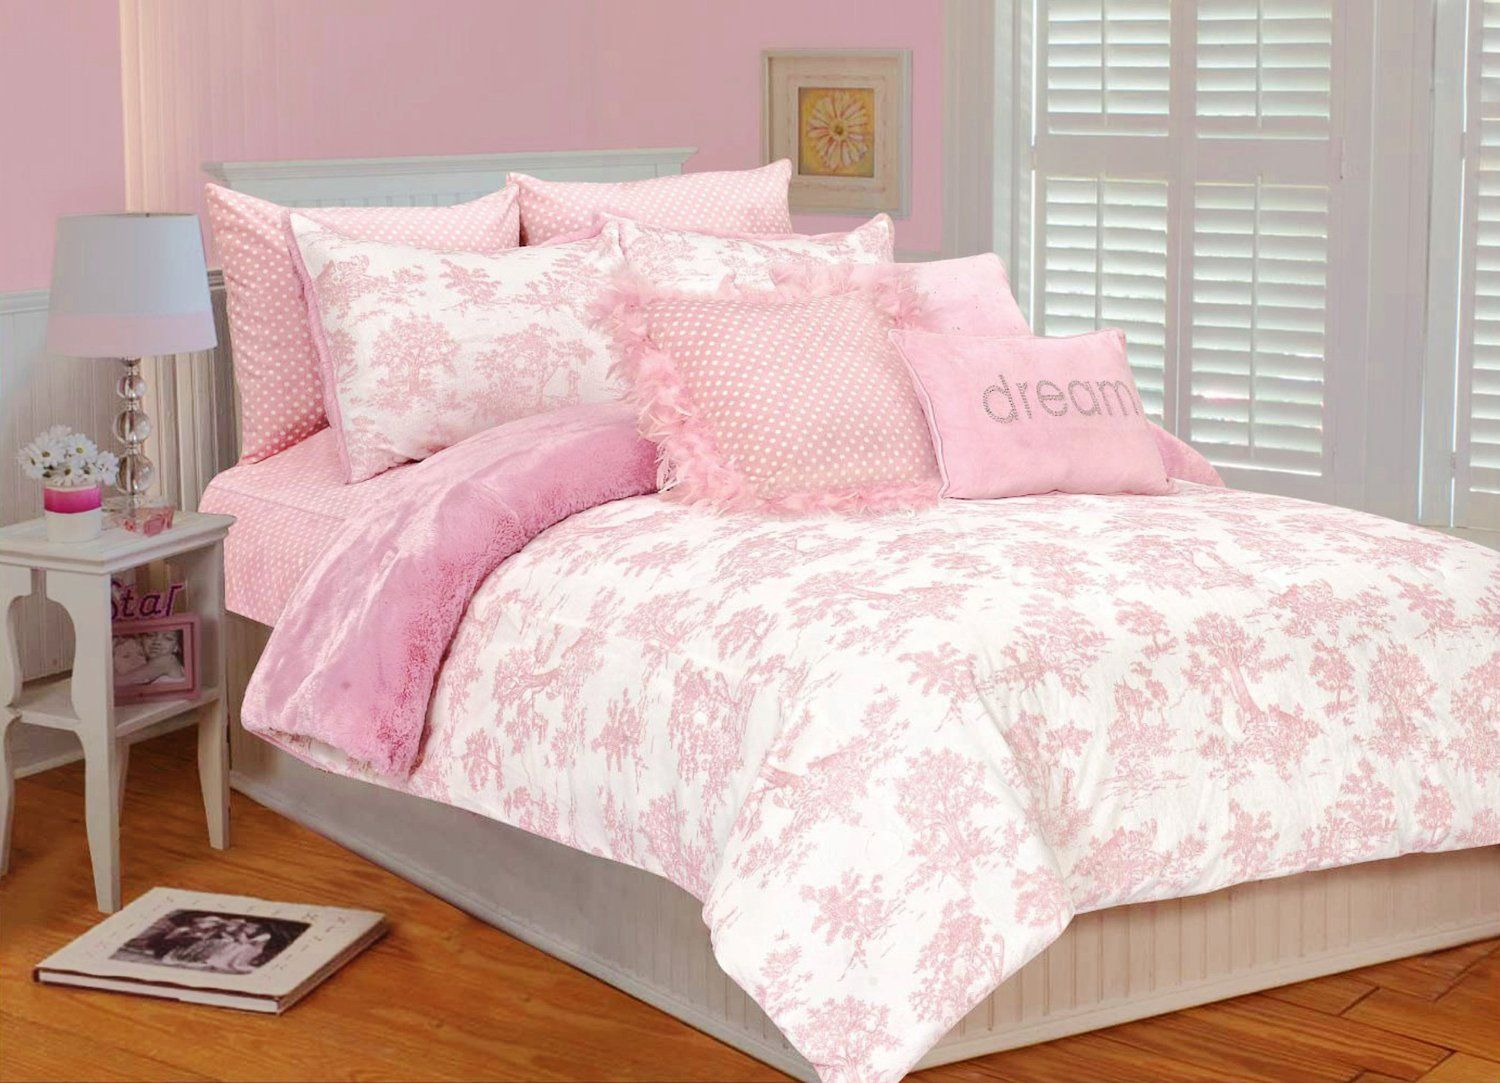 rose, coral , magenta and pink bedroom decorating ideas | gemello